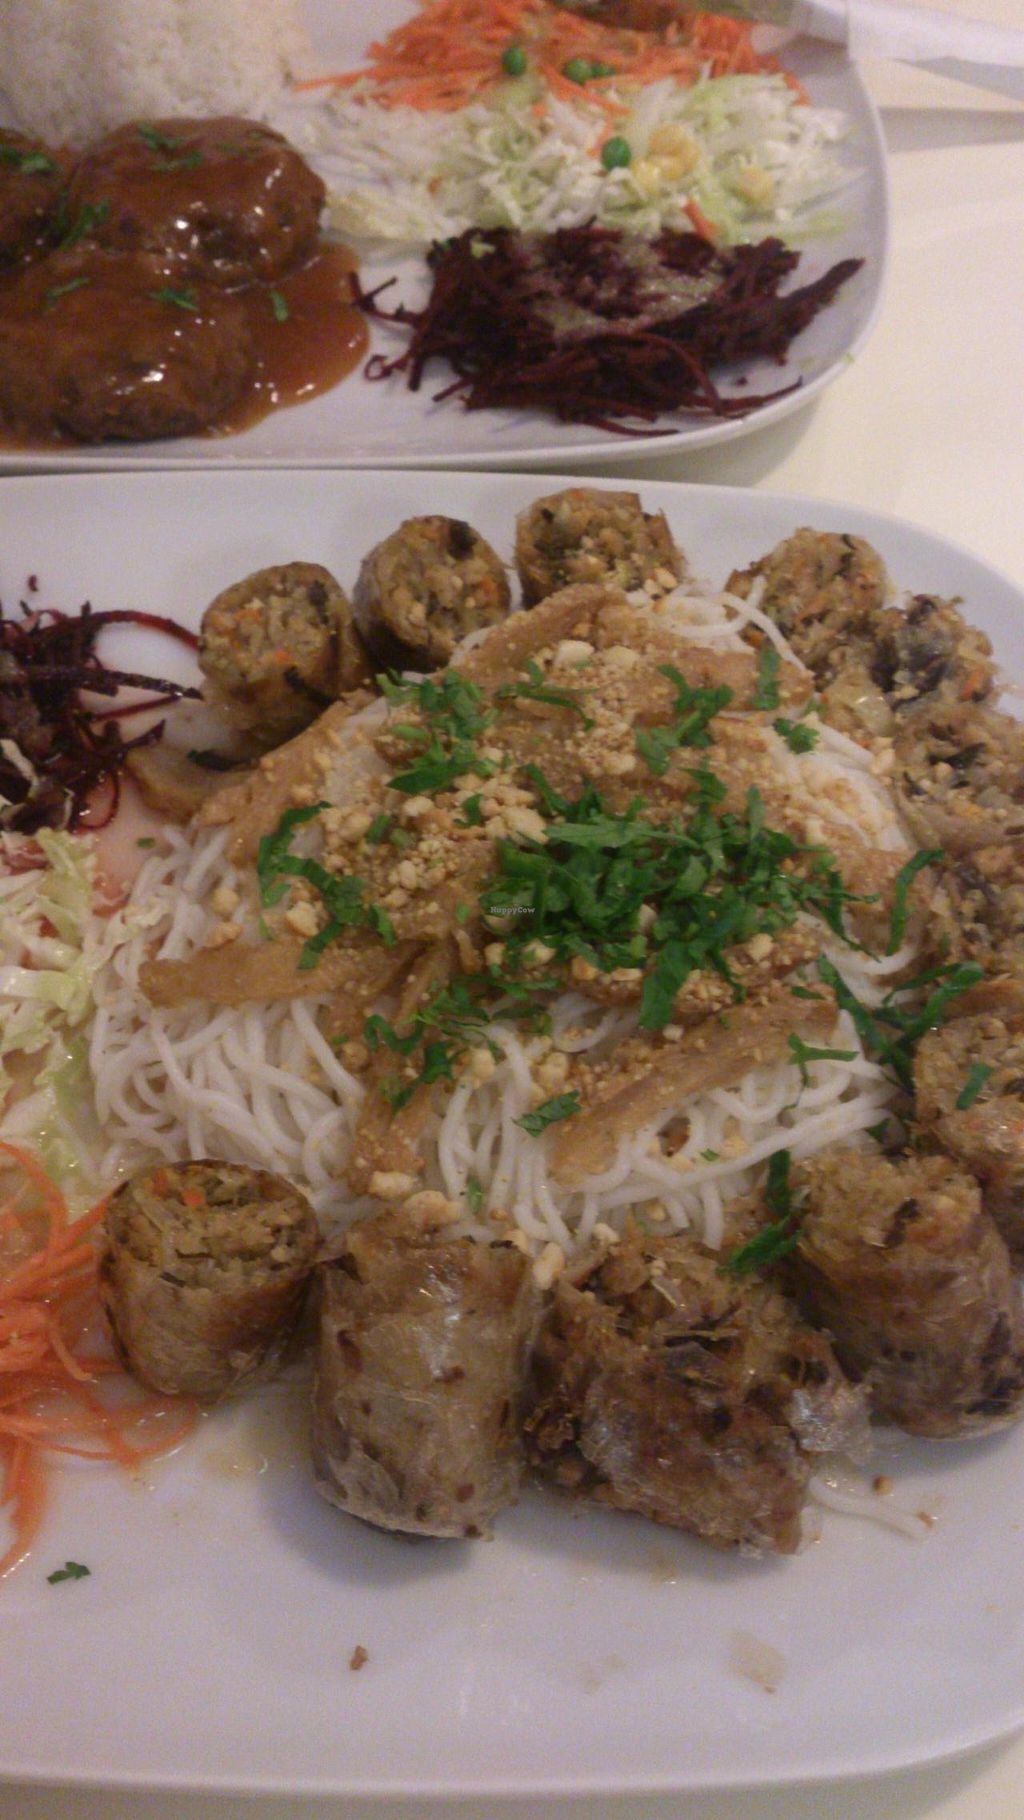 """Photo of Loving Hut - Warynskiego  by <a href=""""/members/profile/werkat"""">werkat</a> <br/>Bun cha gio, above- Vegan balls <br/> November 4, 2014  - <a href='/contact/abuse/image/43710/84624'>Report</a>"""